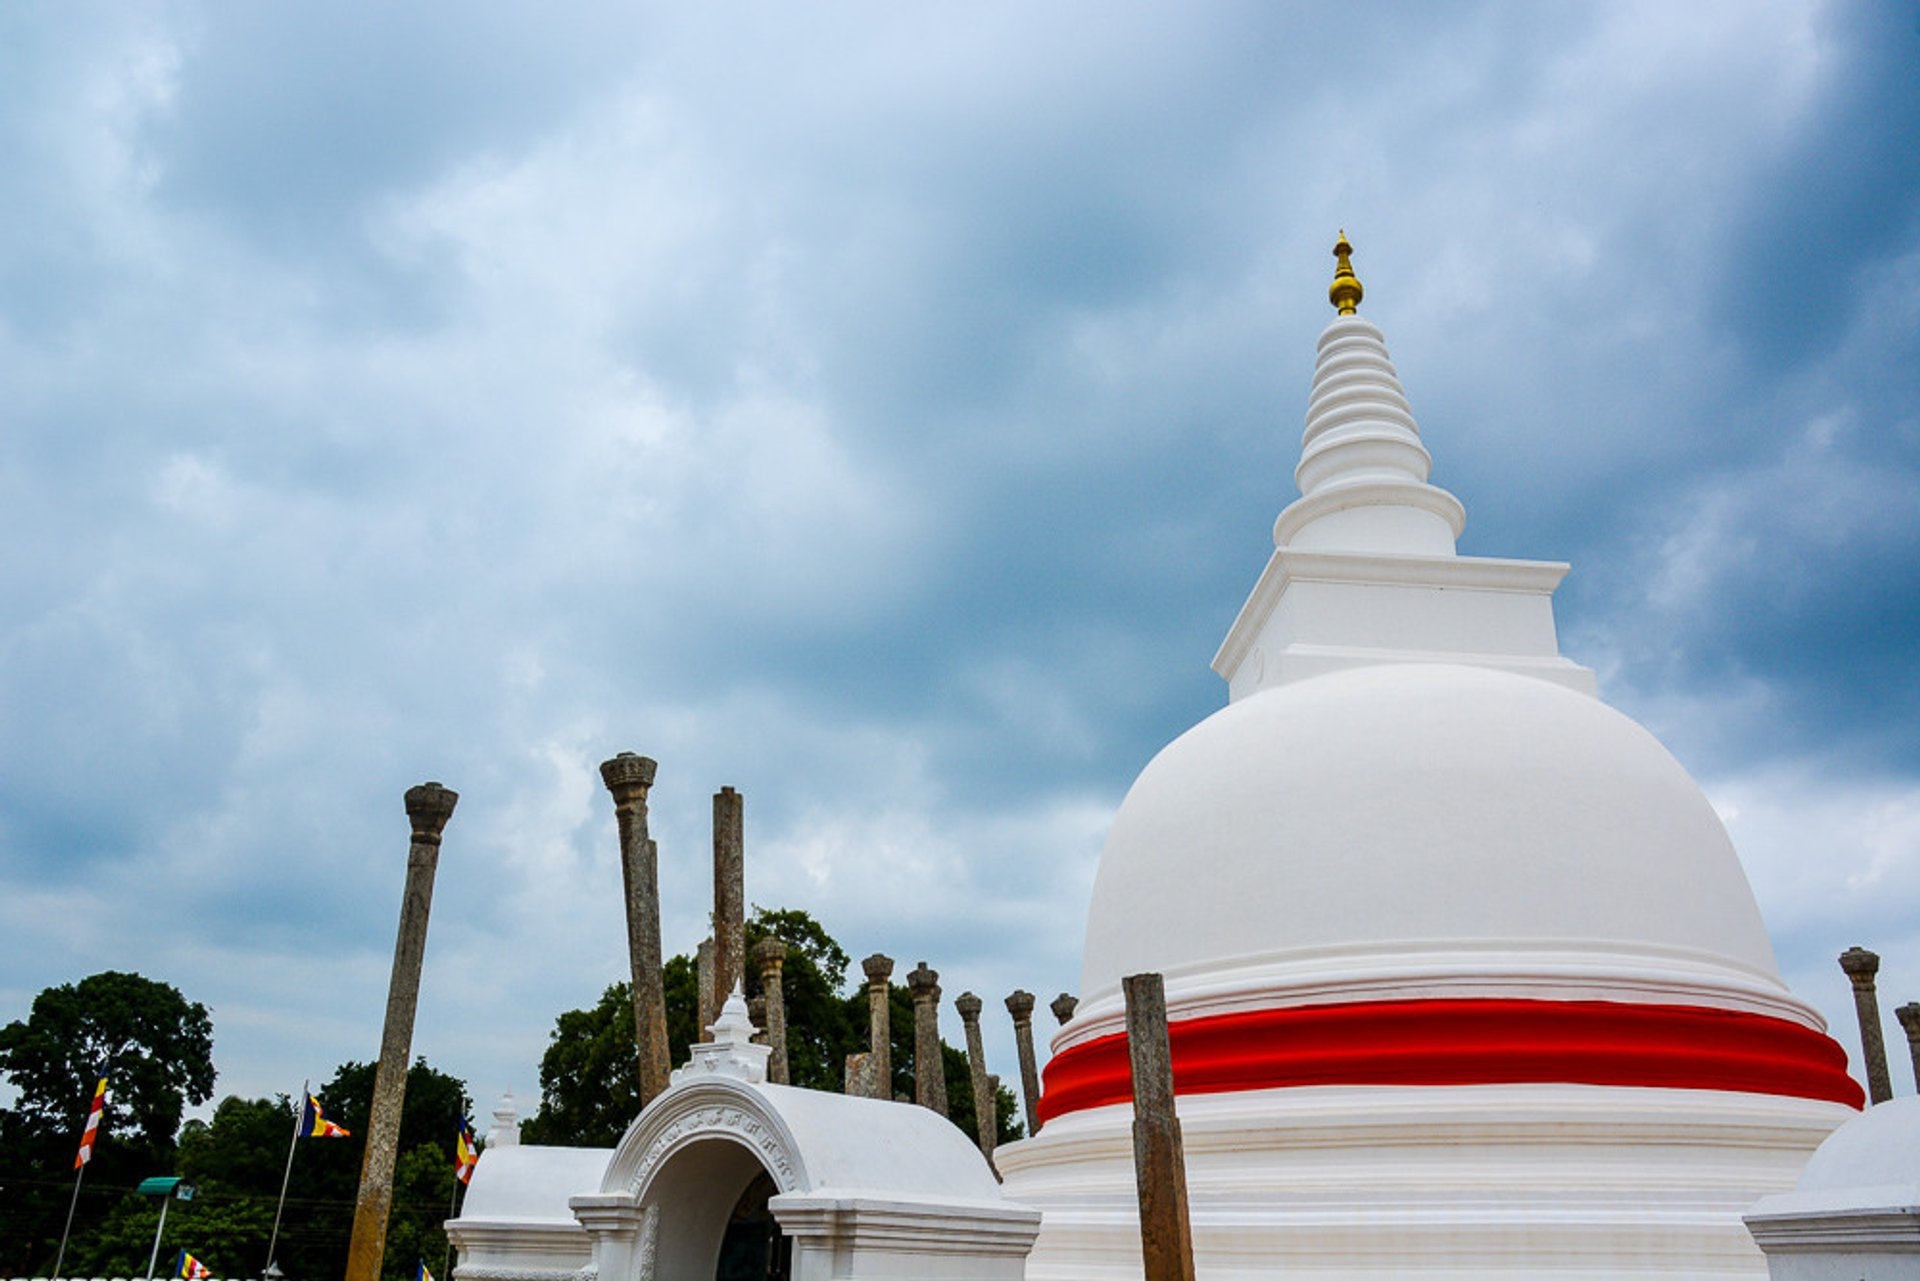 Anuradhapura in Sri Lanka - Best Season 2020